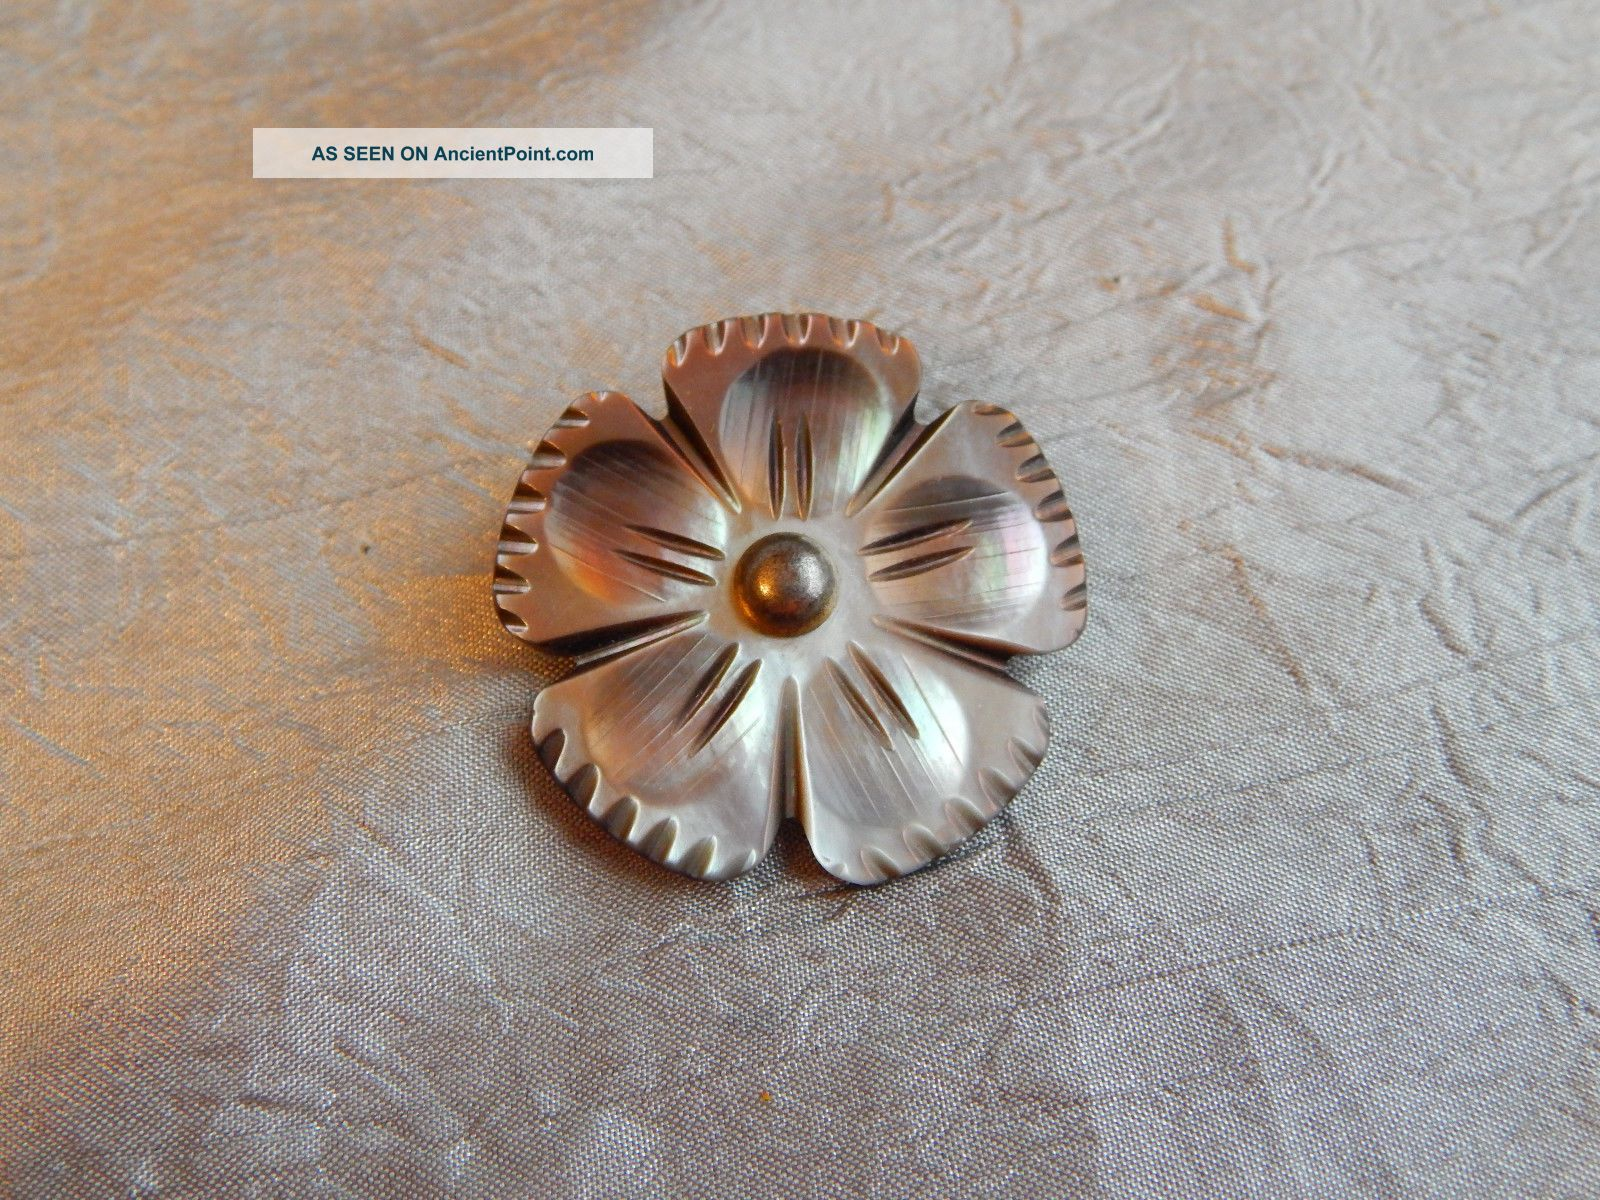 Vintage Button Carved Flower Mother Of Pearl Abalone Shell 503 - A Buttons photo